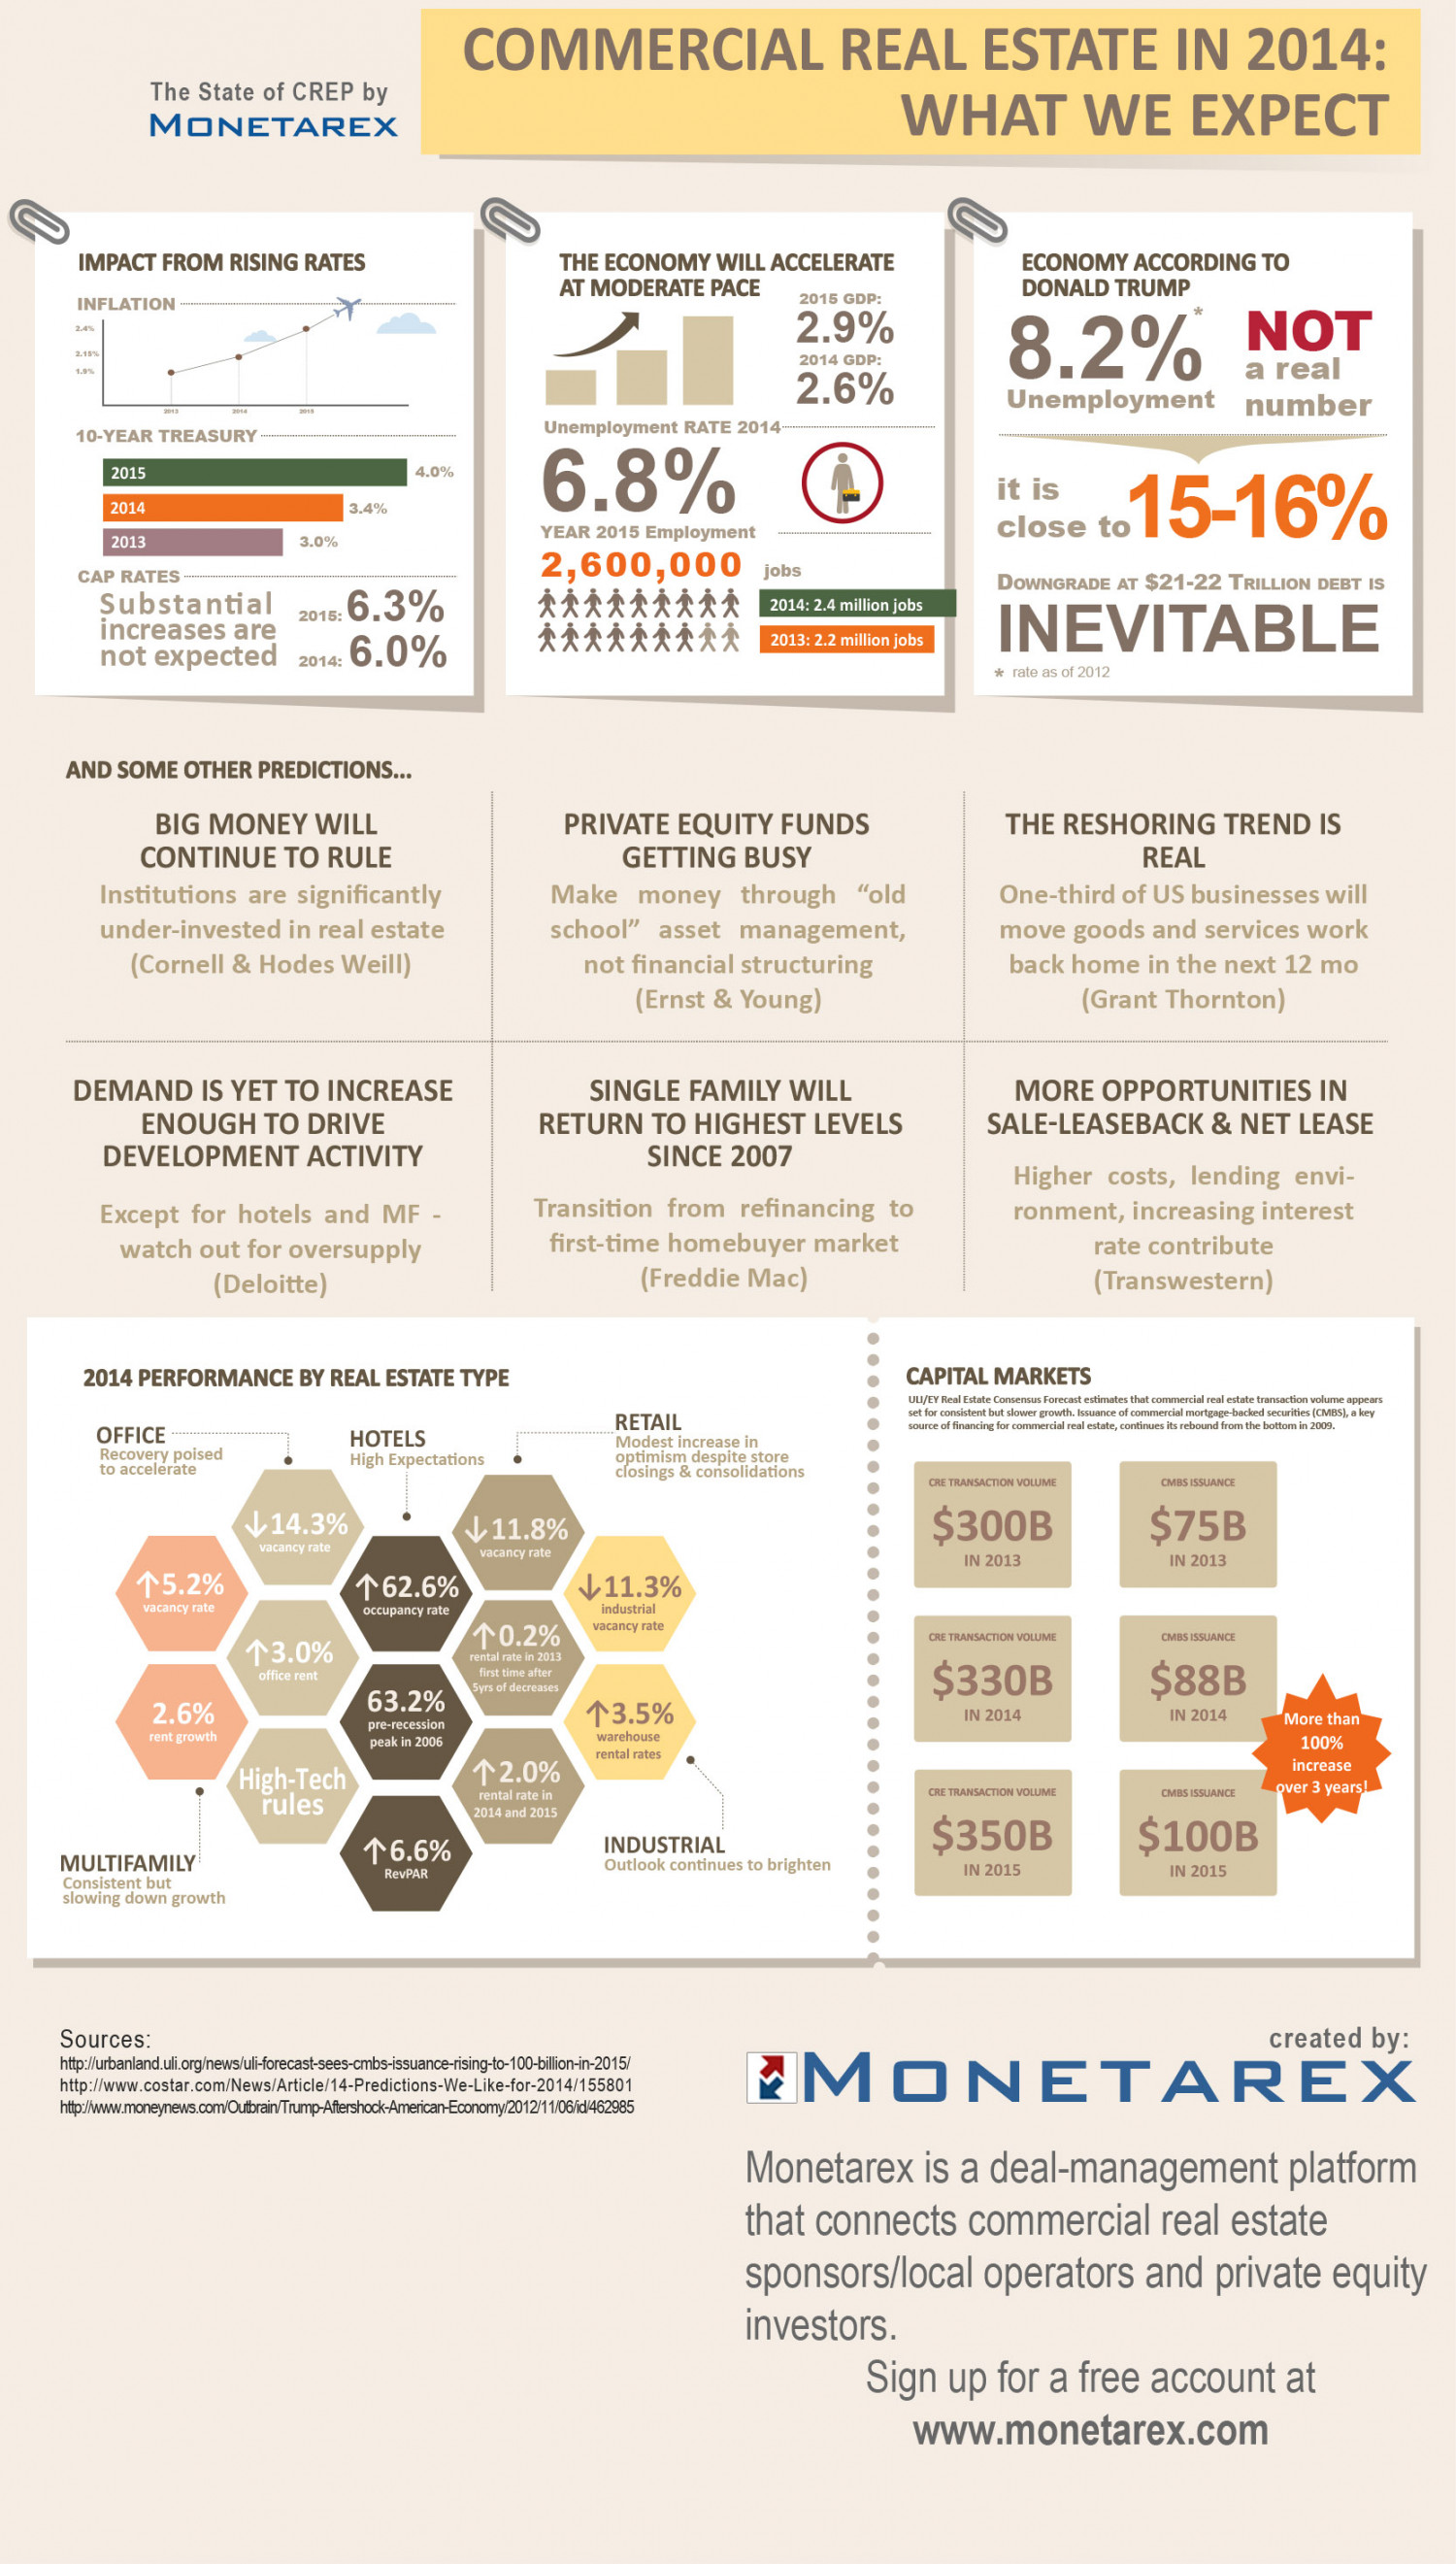 Commercial Real Estate in 2014: What To Expect  Infographic